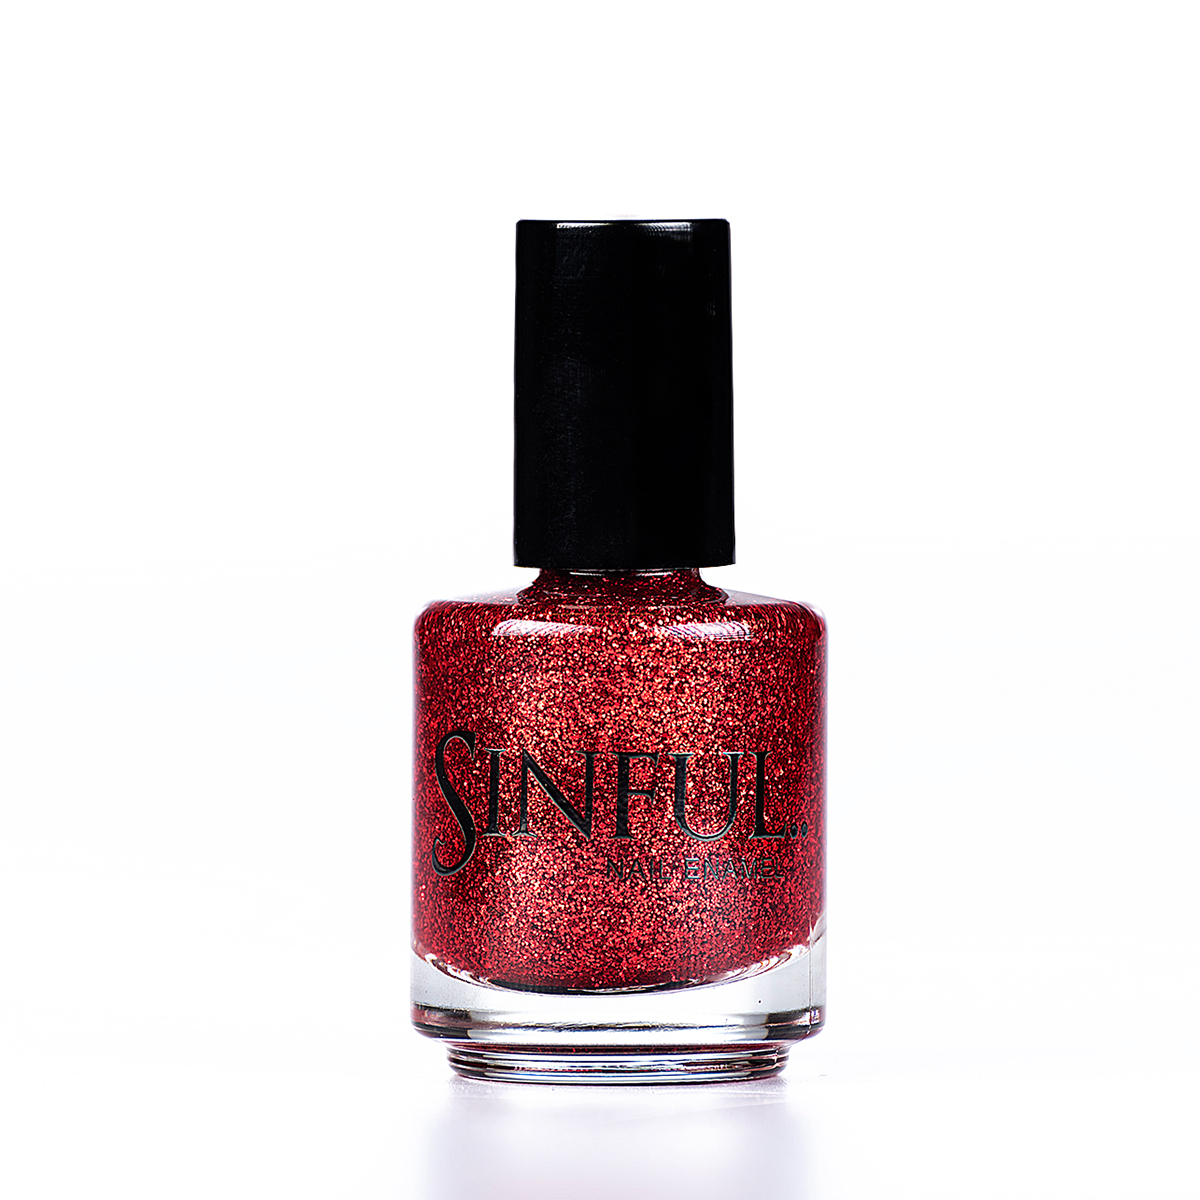 Romp, a Red hot glitter Can be applied over a red undercoat to give a quick, dazzling effect. For a full nail super glitter effect, apply 2-3 layers with a top coat. 15ml